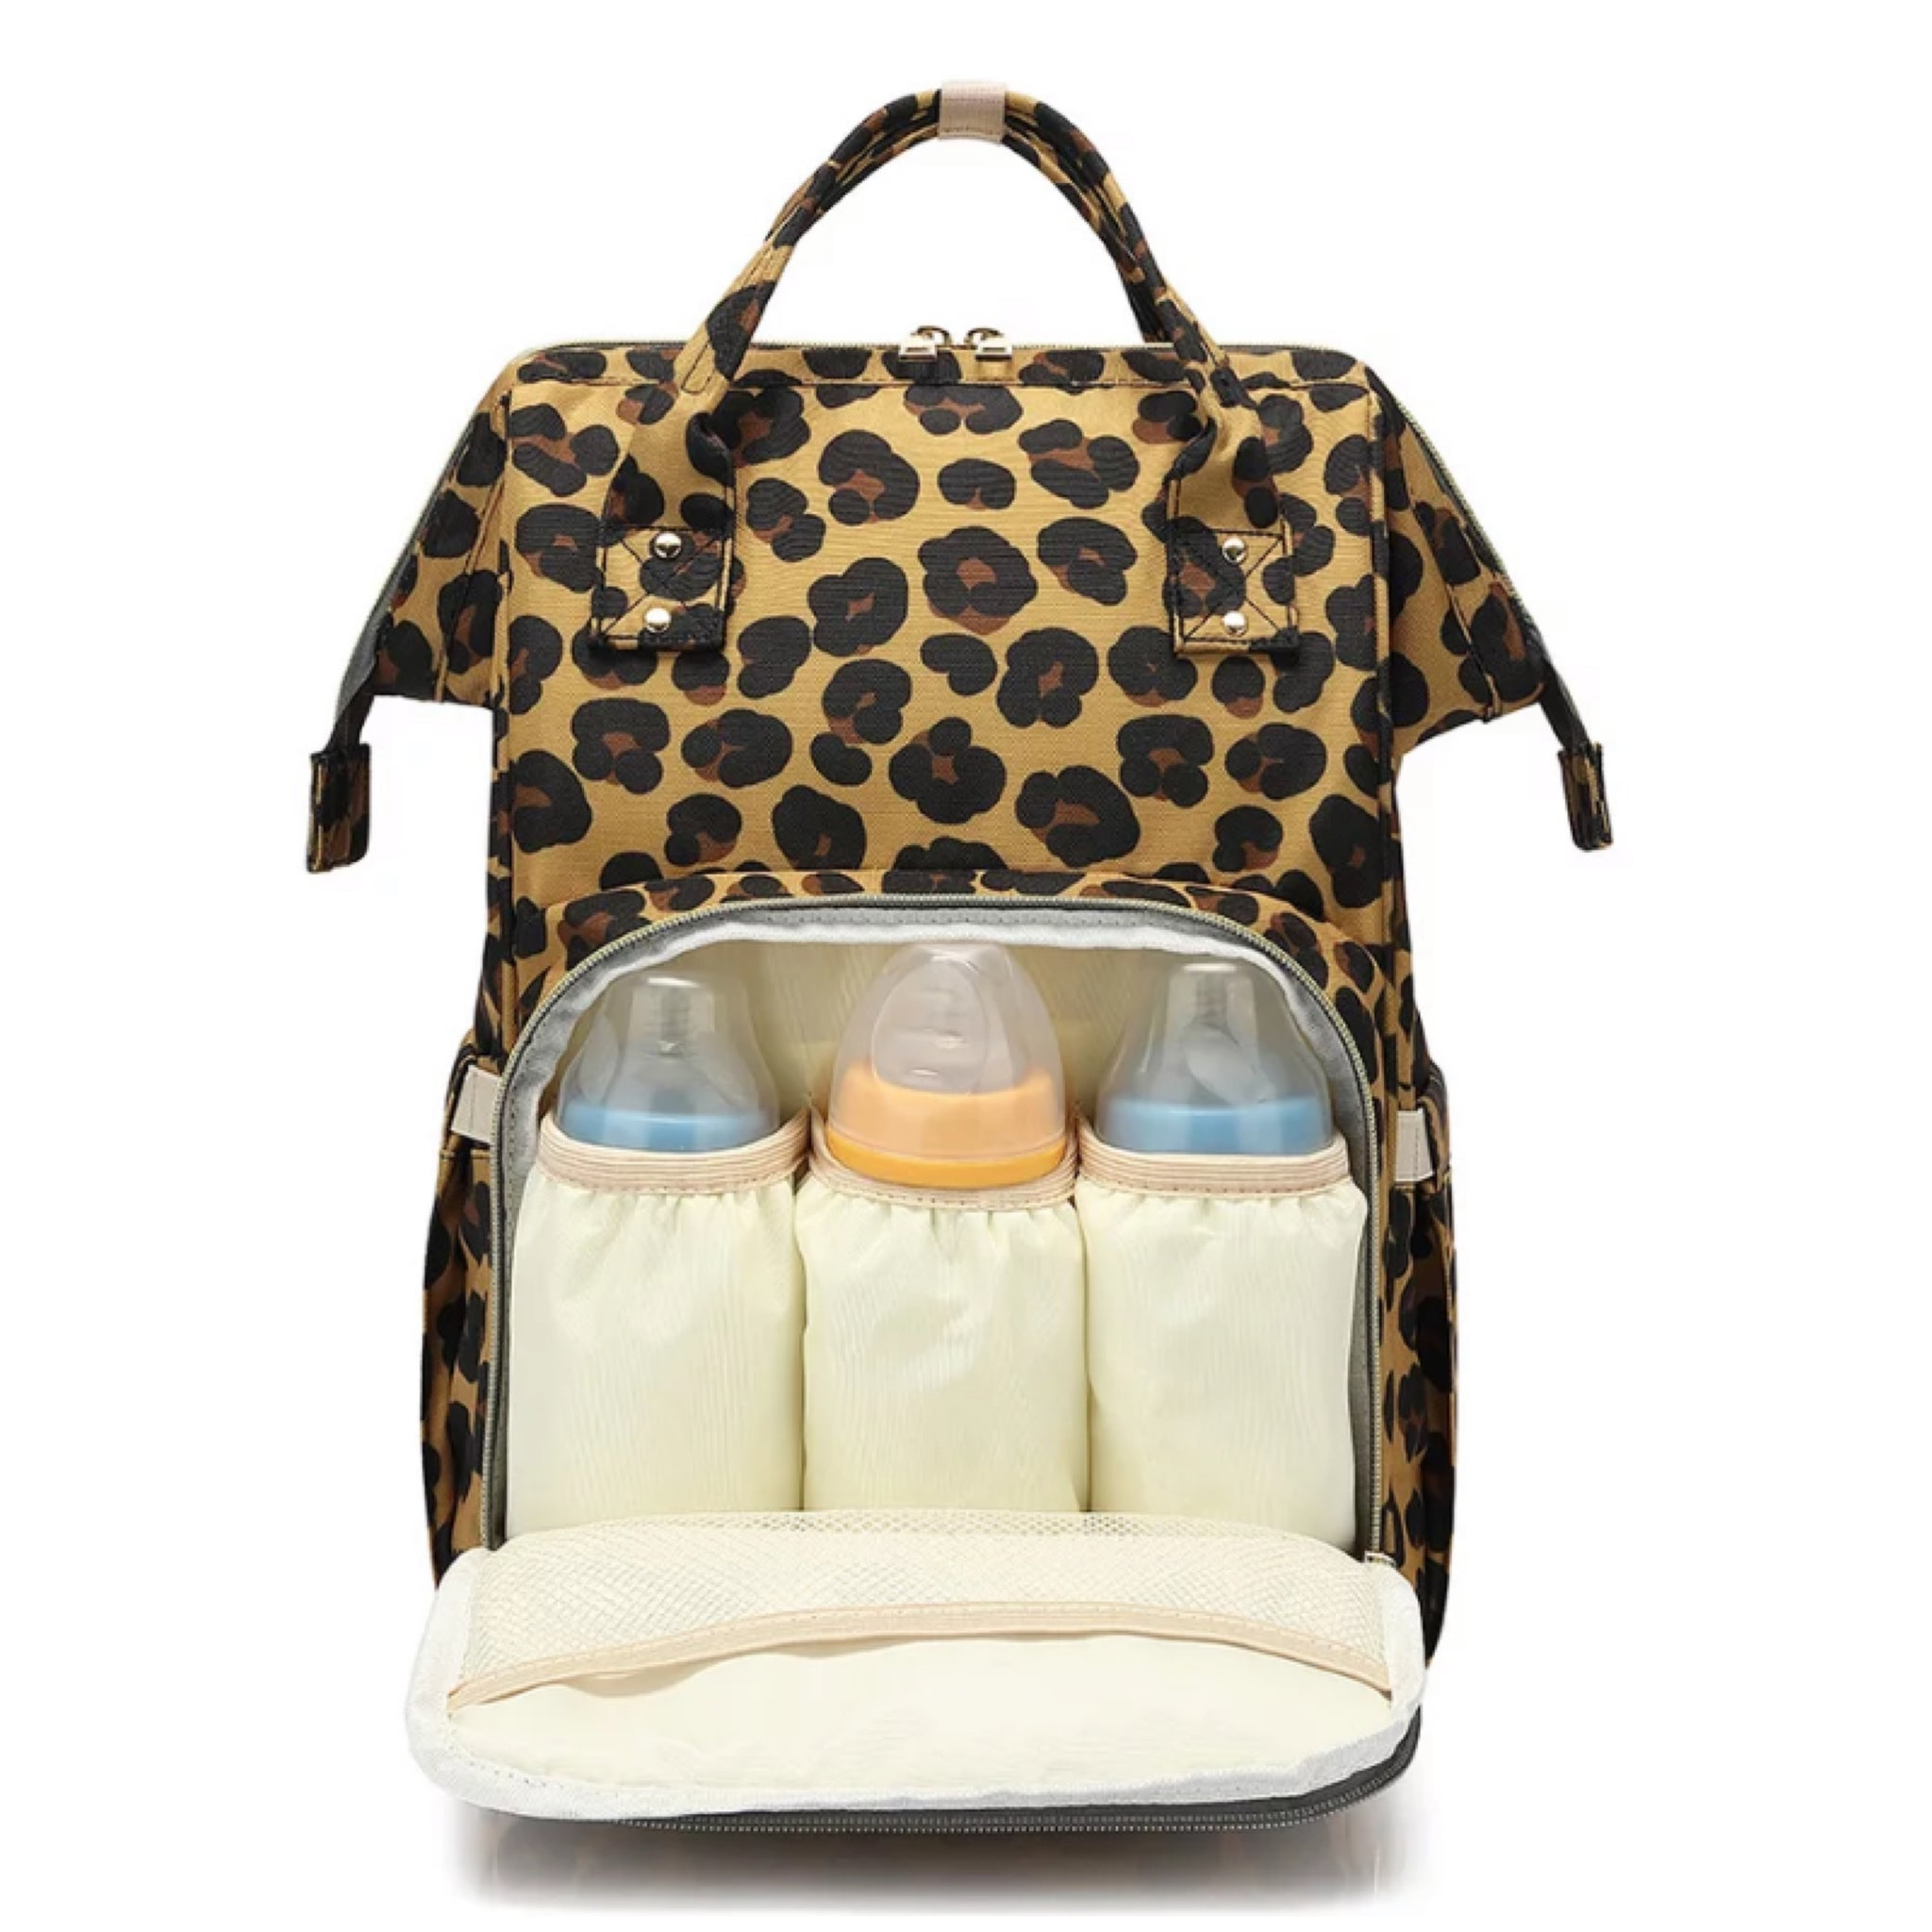 Nappy Bag/Maternity Bag